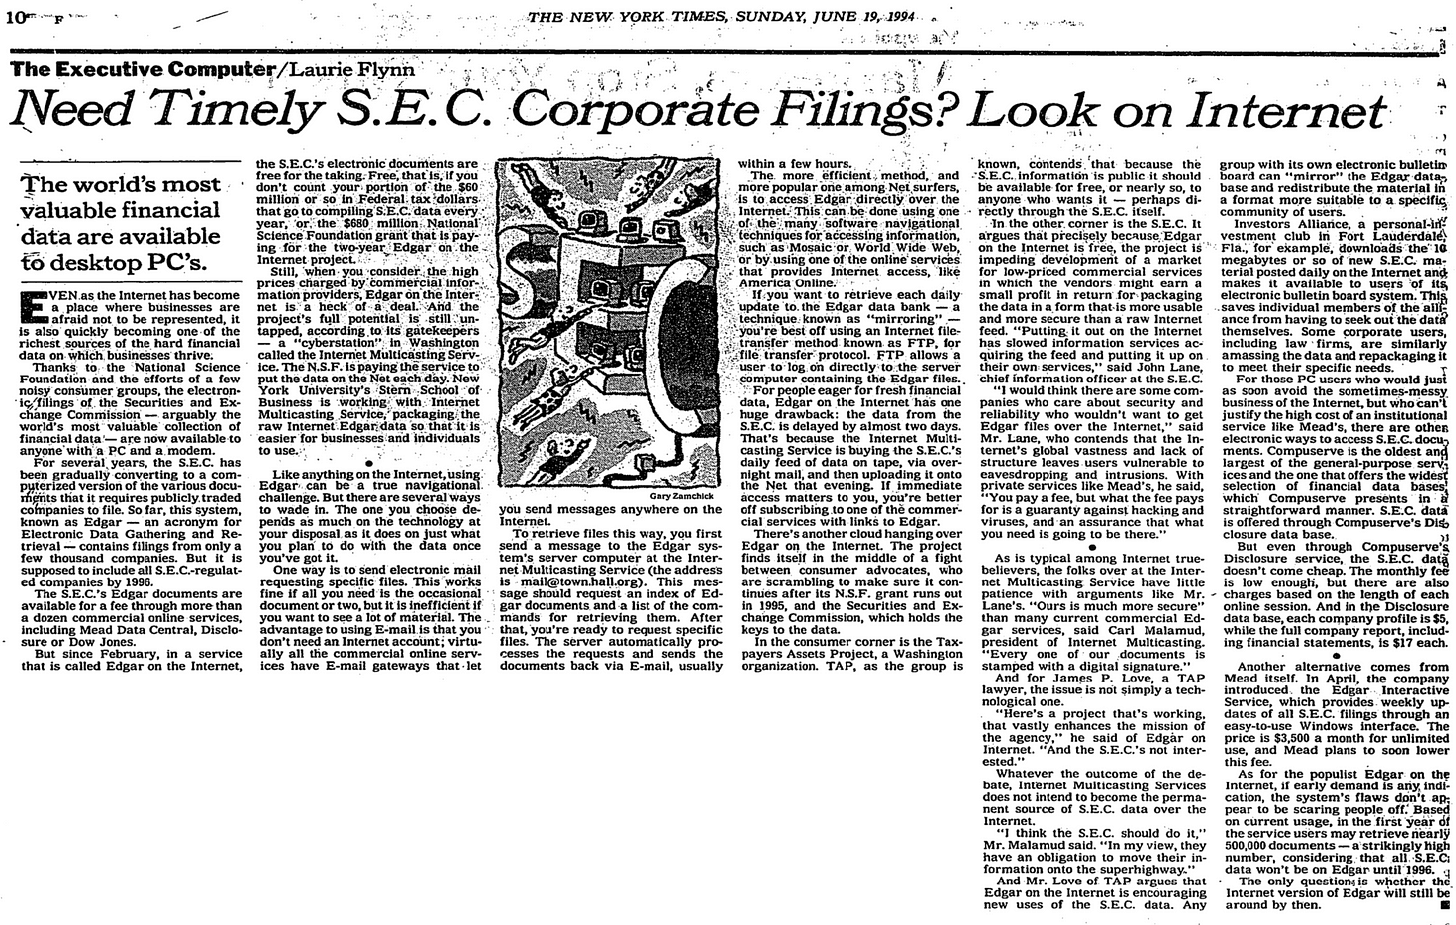 Article from NY Times describing the information available on the internet.